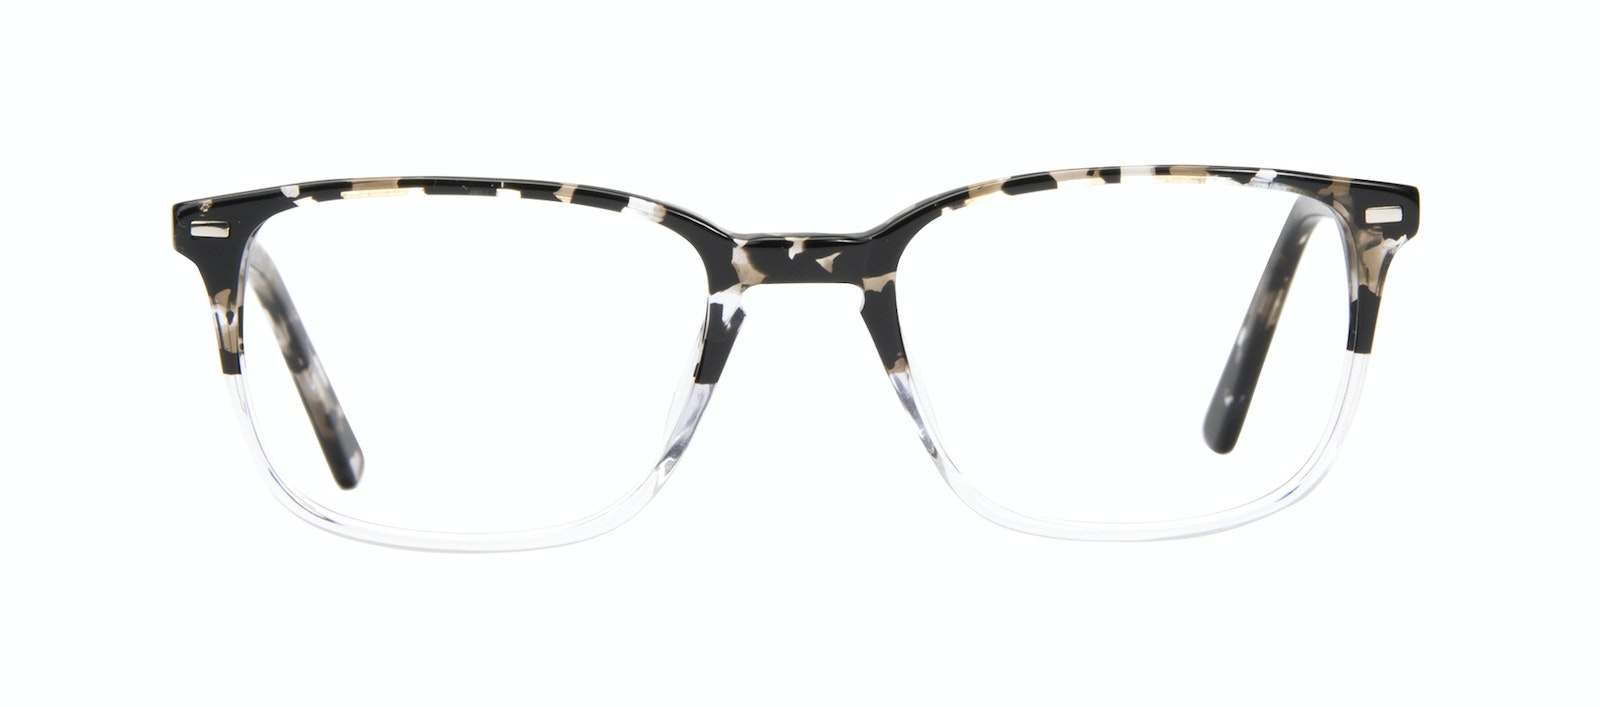 556d207e1cc2 Affordable Fashion Glasses Rectangle Eyeglasses Men Sharp Clear Stone Front